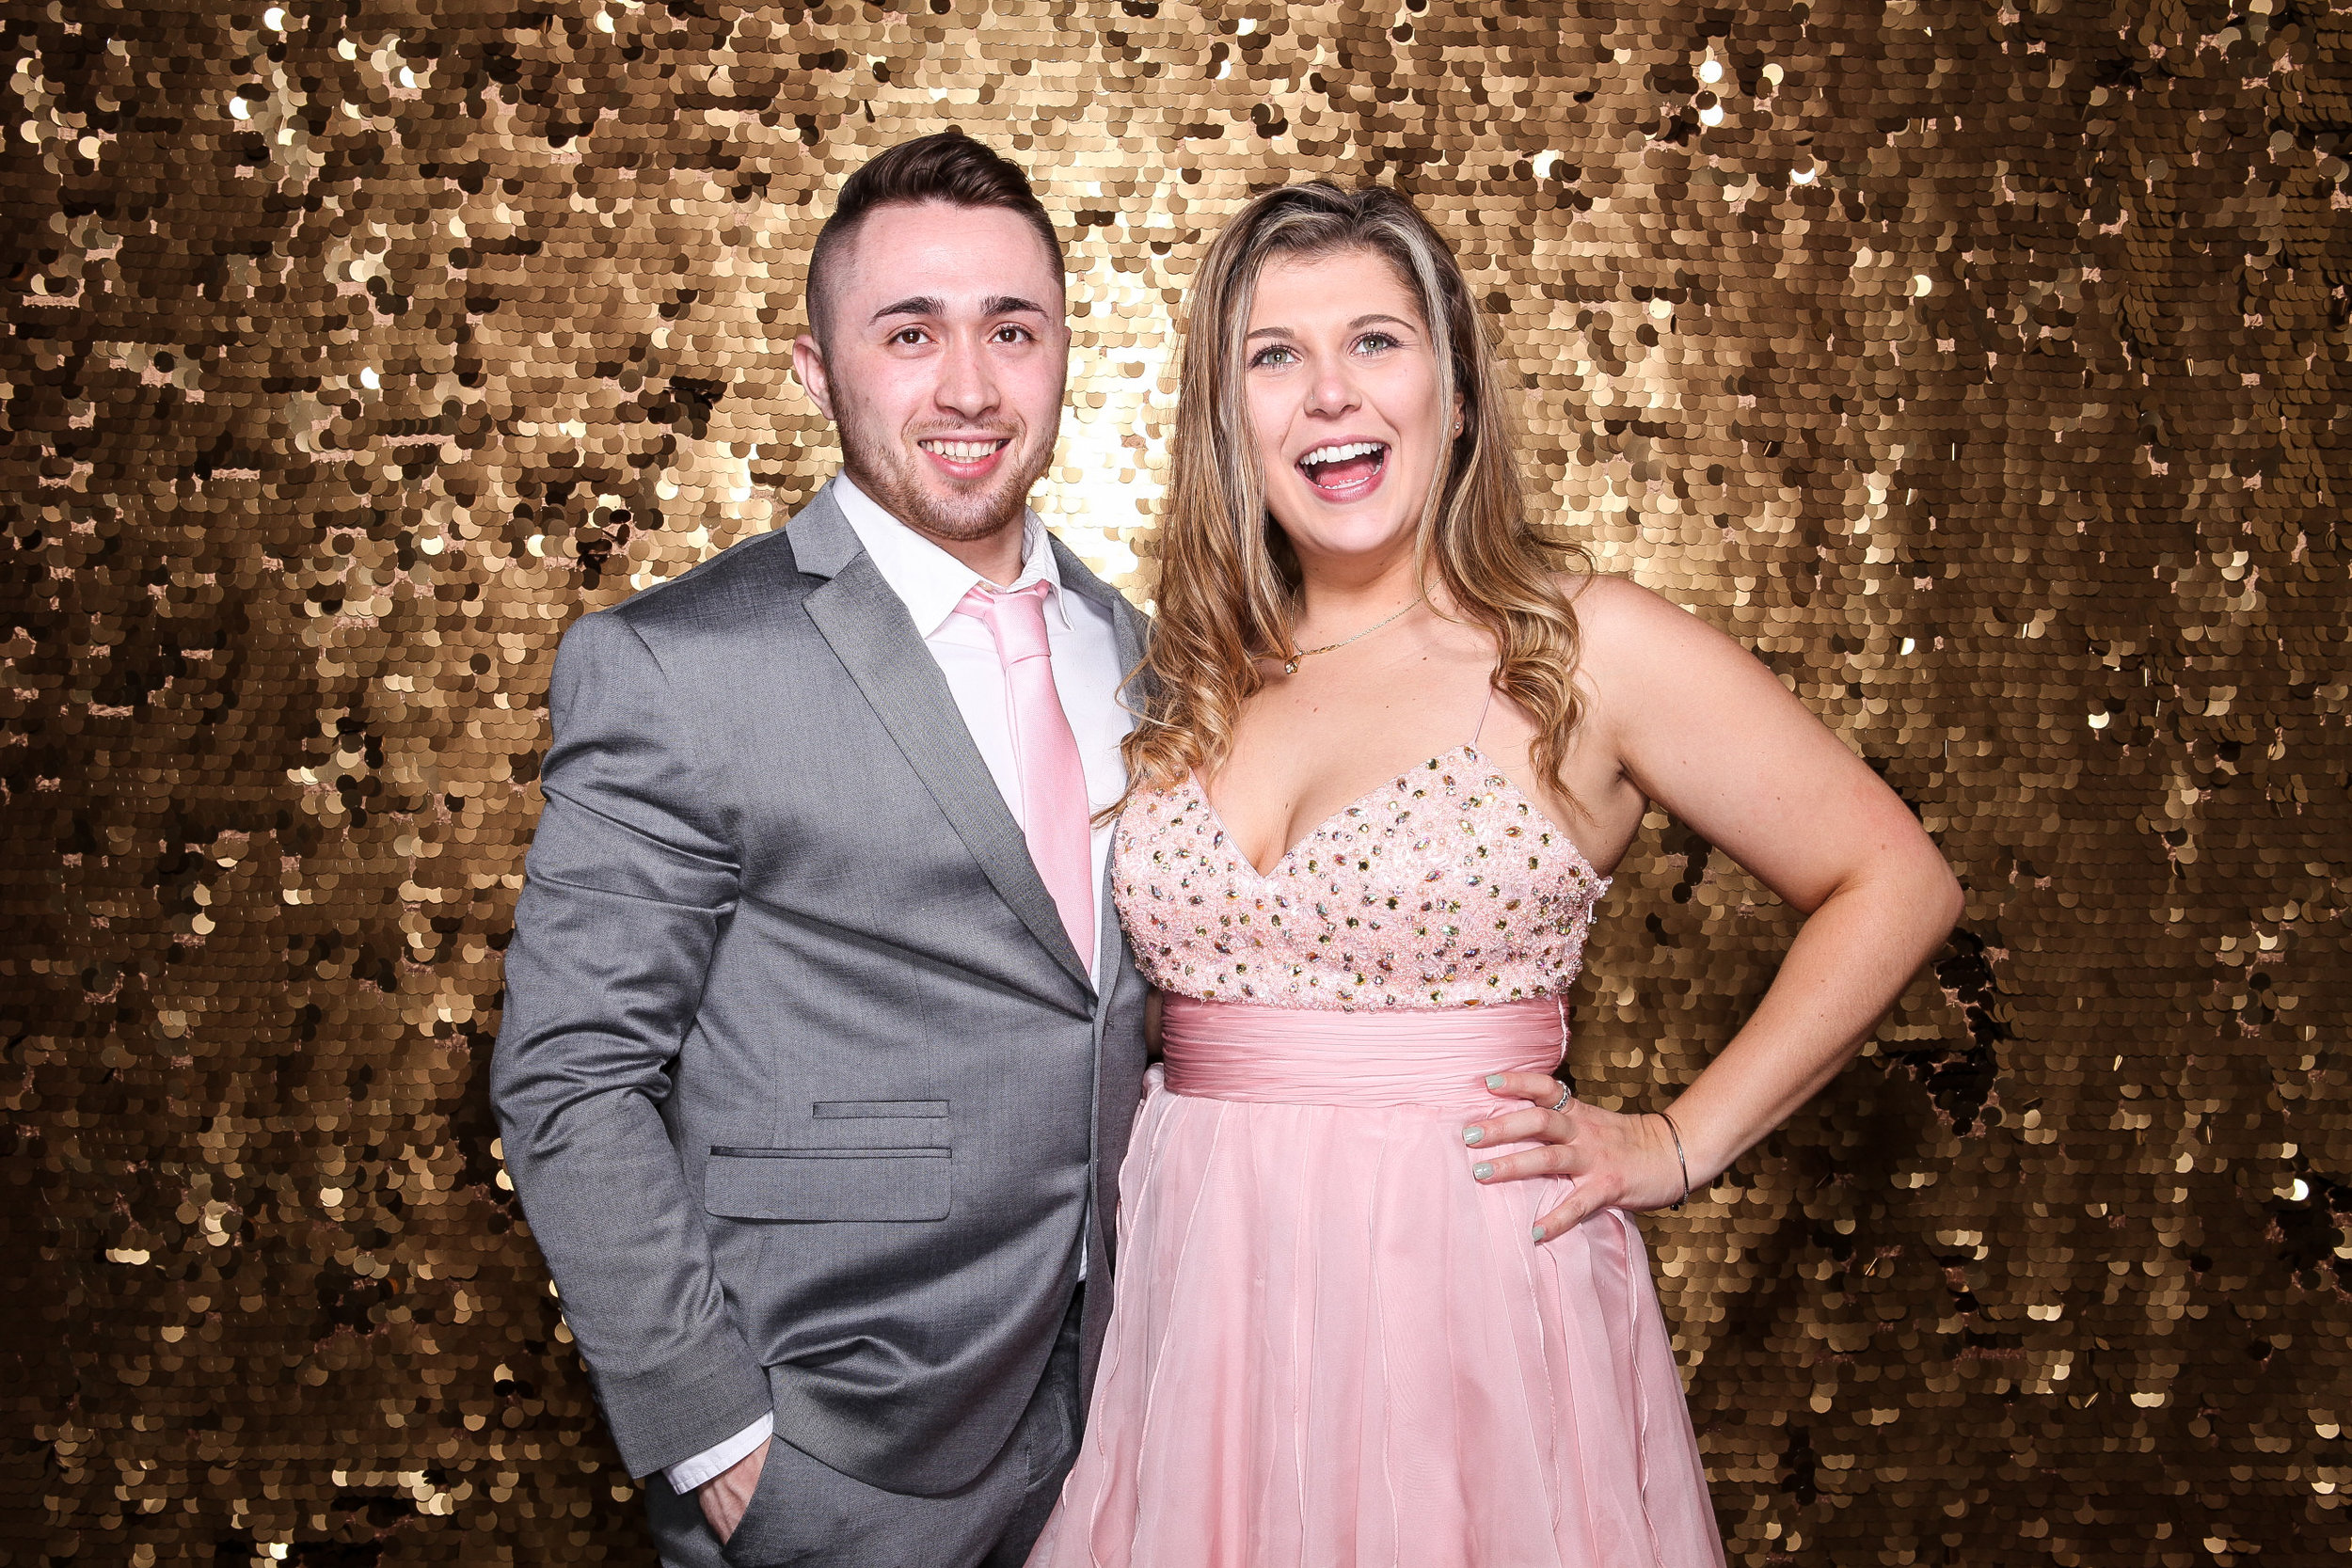 20190503_Adelphi_Senior_Formal-319.jpg